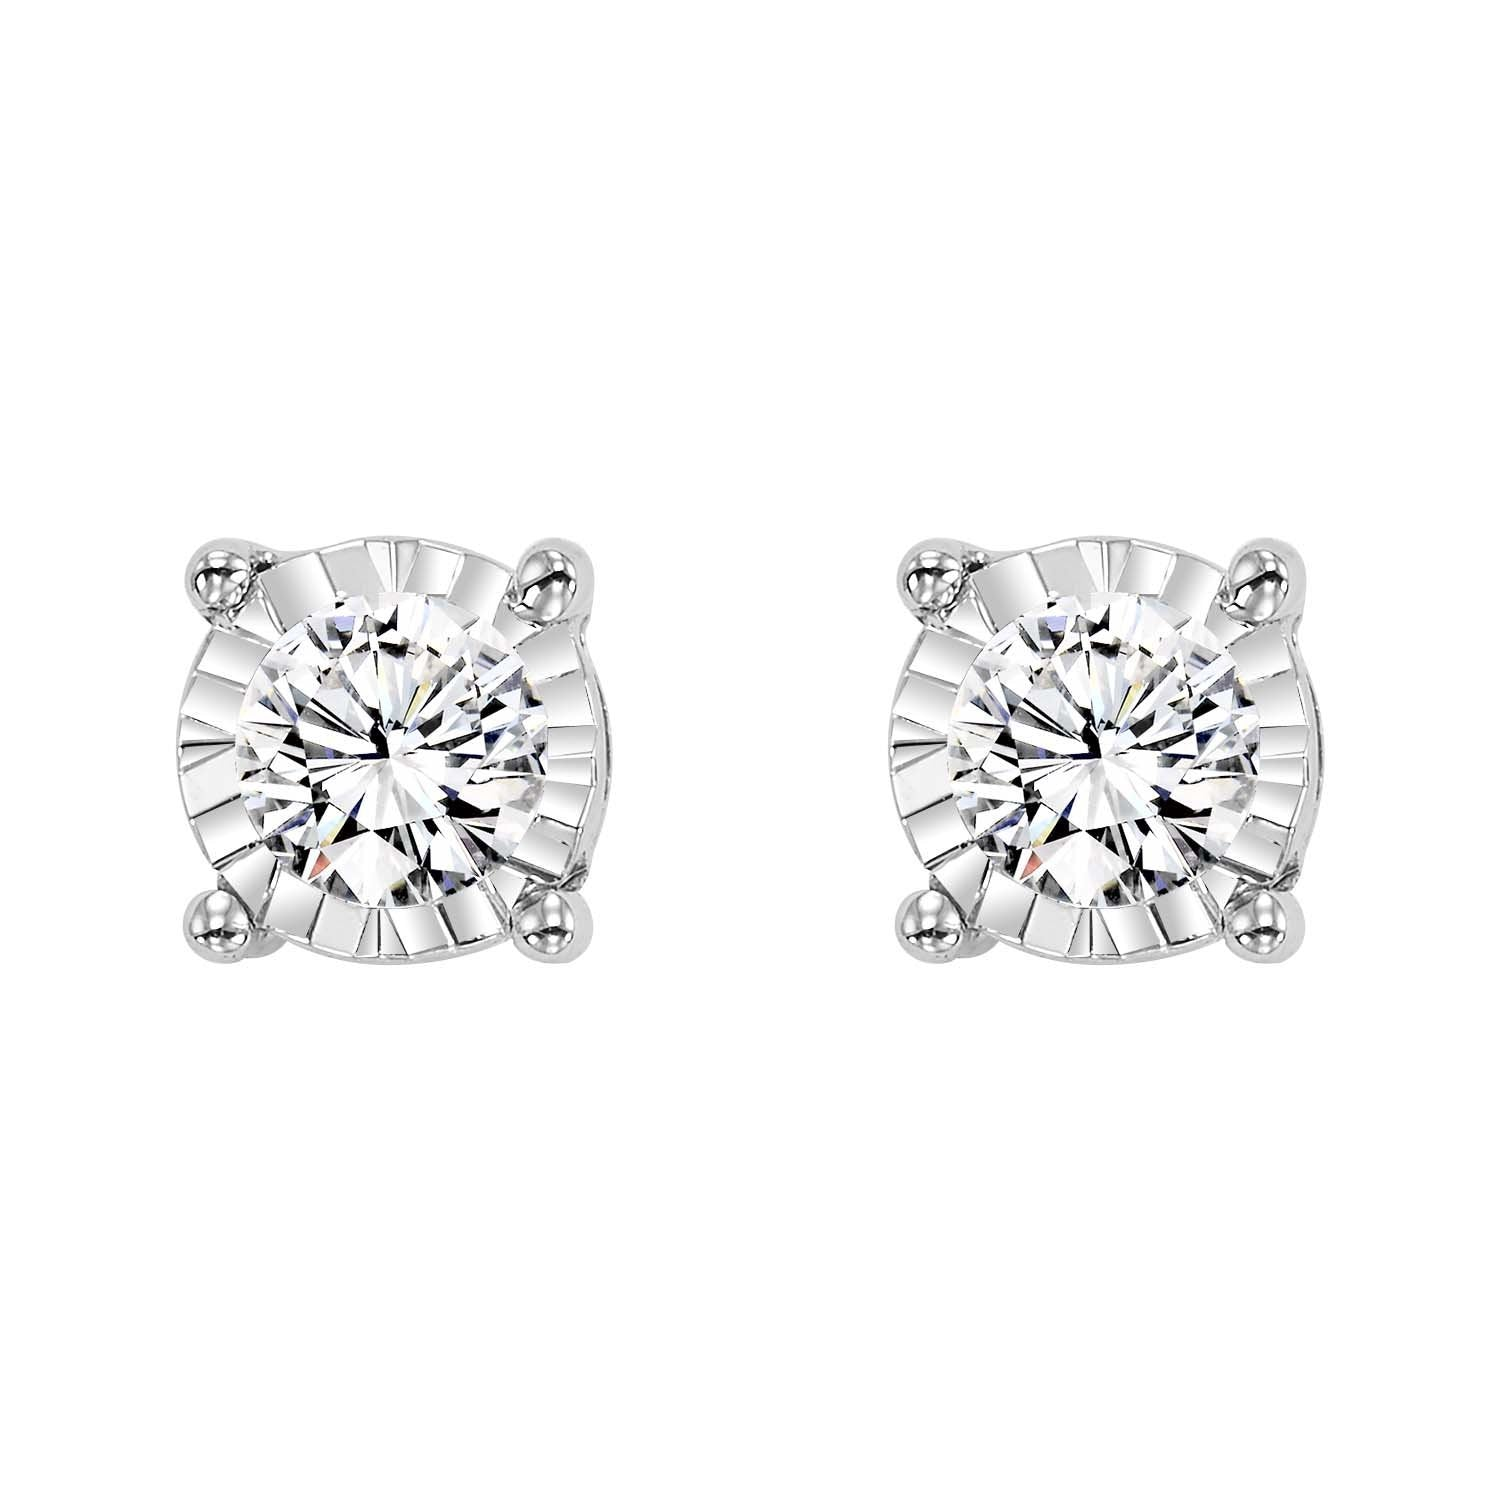 14K White Gold Diamond Studs 1/4 ct